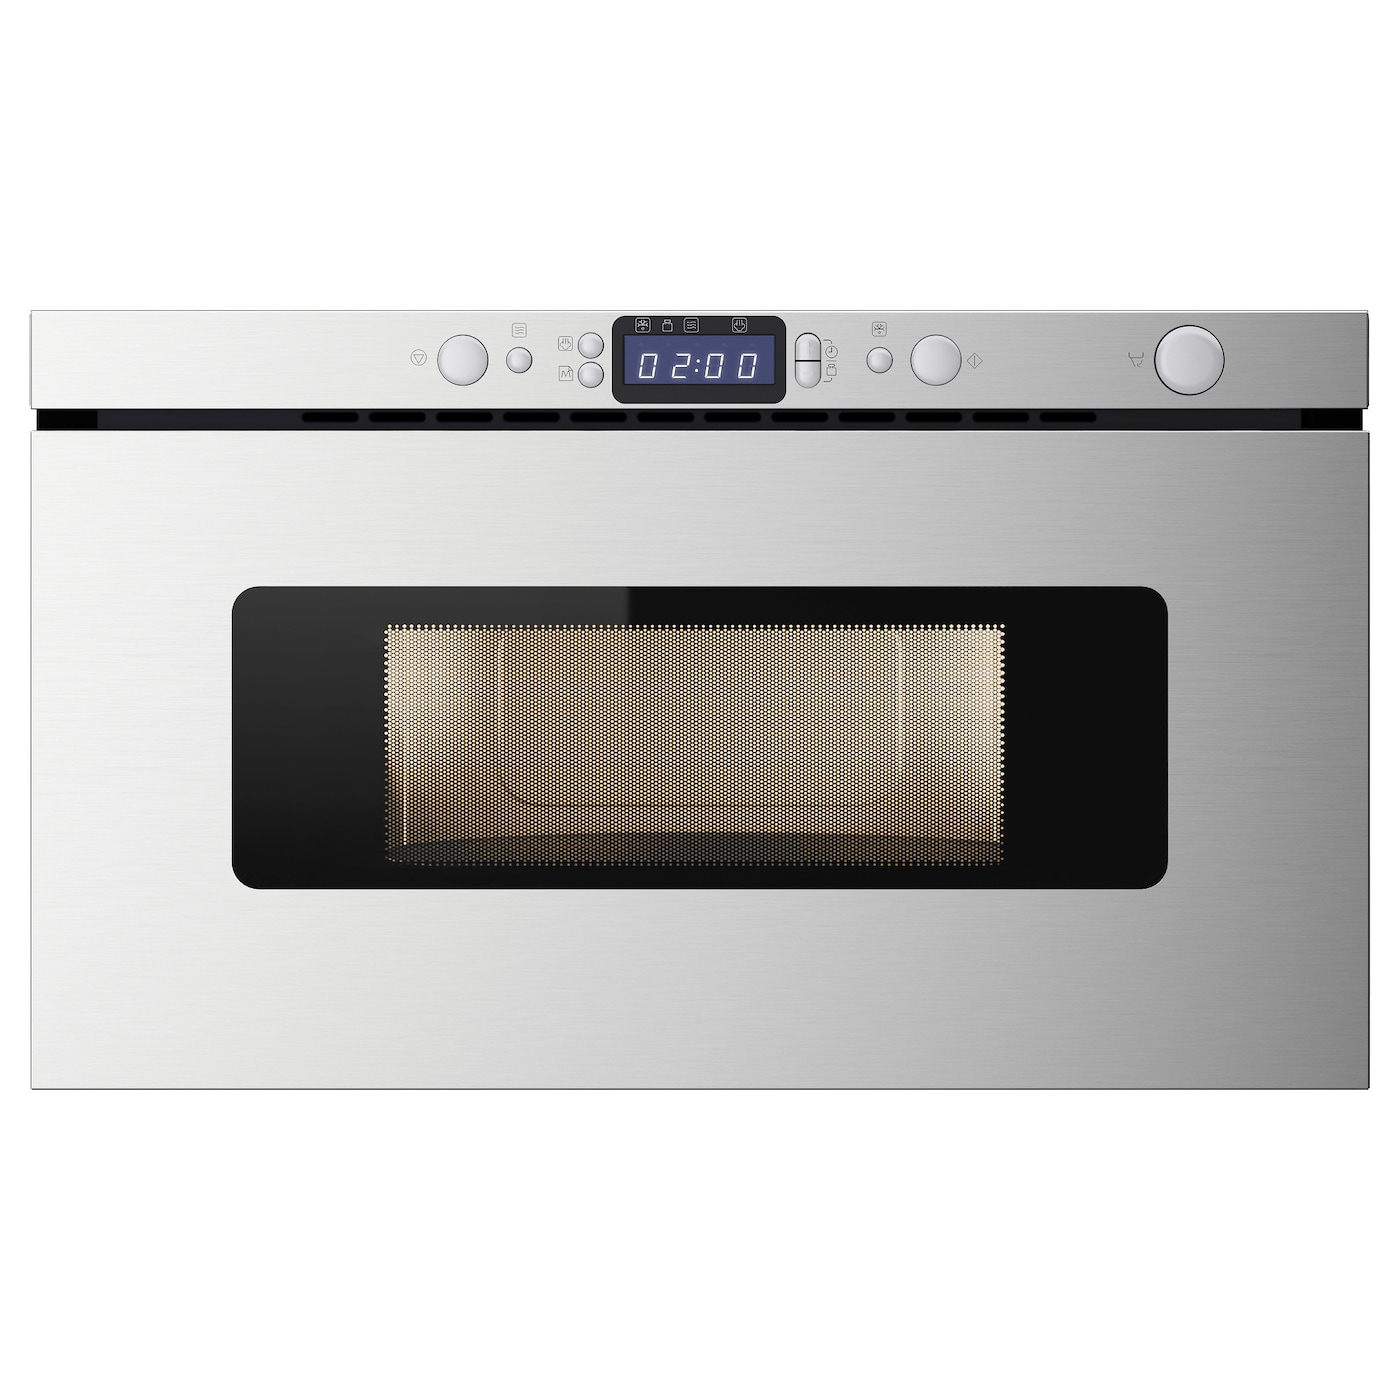 IKEA HUSHÅLLA microwave oven 5 year guarantee. Read about the terms in the guarantee brochure.